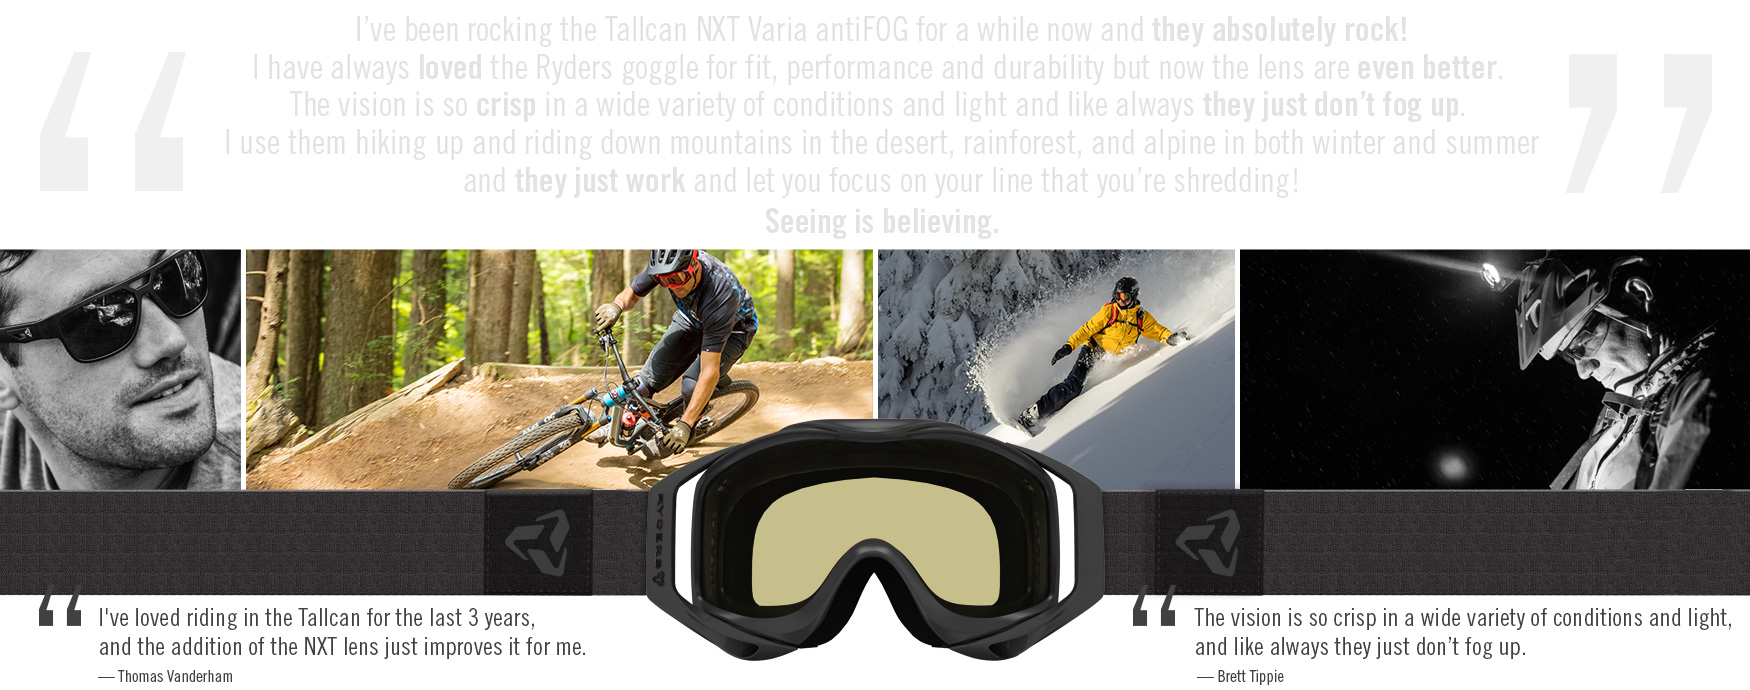 NXT Varia antiFOG Goggles. 3 in 1 Lens Tech for Riding, Skiing, or Snowboarding.